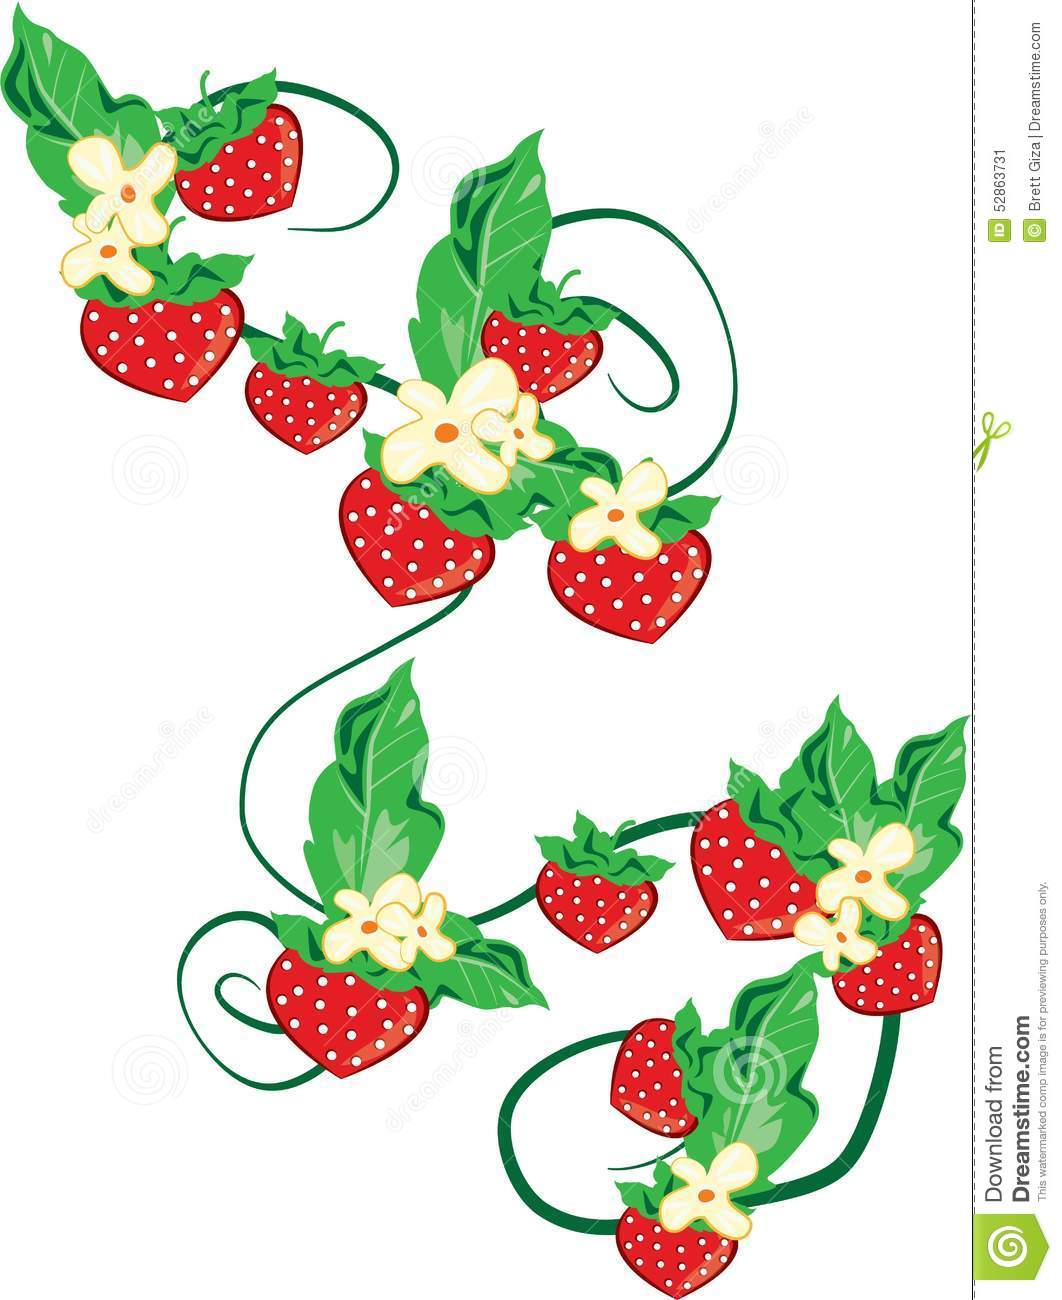 Strawberry Vine Clipart | www.imgkid.com - The Image Kid ...